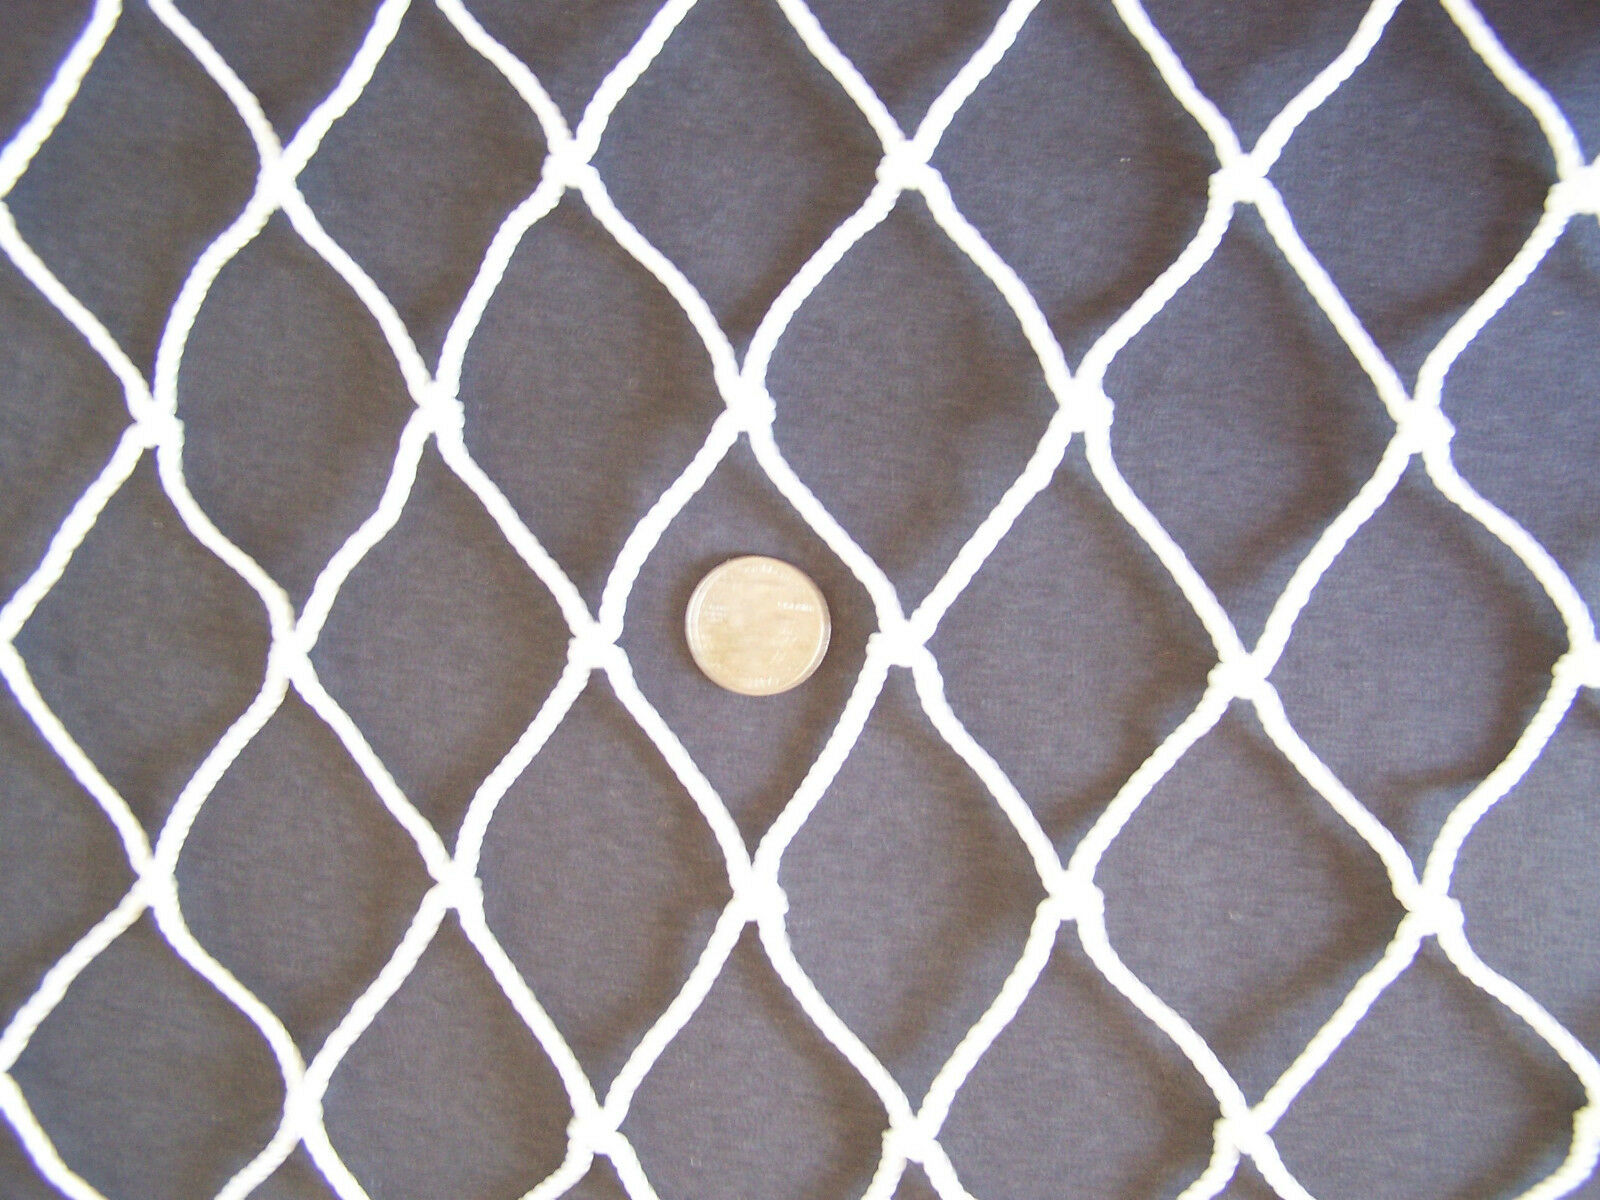 25' X 10'   CLOSE IMPACT NYLON BASEBALL NET 2   HORSE HAY ROUND BALE NETTING